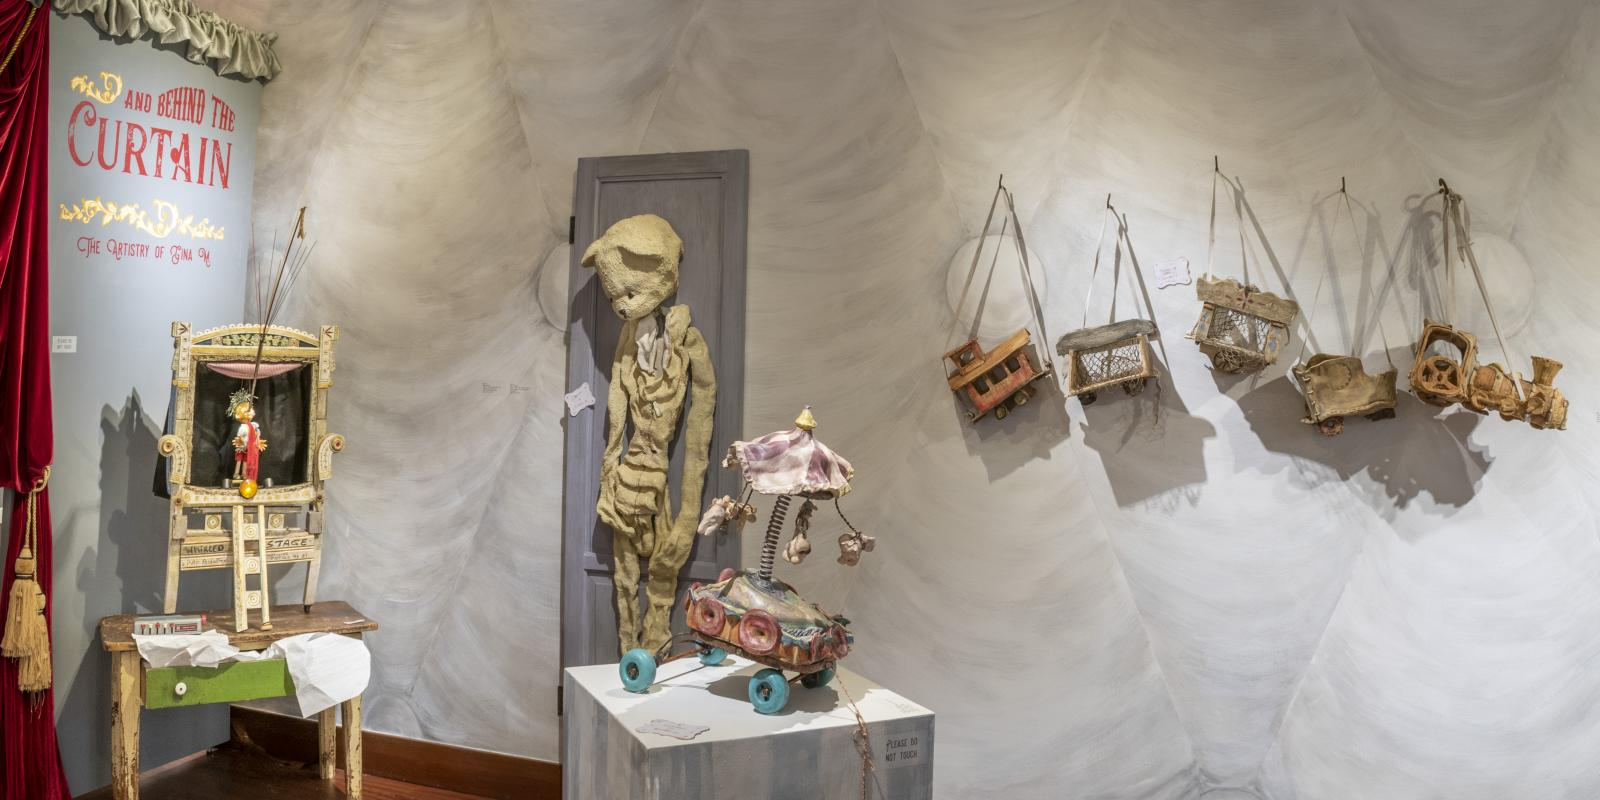 """Installation View, Front of gallery, """"Through the Toy Shop and Behind the Curtain: The Artistry of Gina M."""" Exhibition, Jan. 21, 2020 extended through Dec. 13, 2020 (extended indefinitely after Dec. 13, 2020), Curator: Michele Cairella Fillmore, Don B. Huntley Gallery, Cal Poly Pomona."""